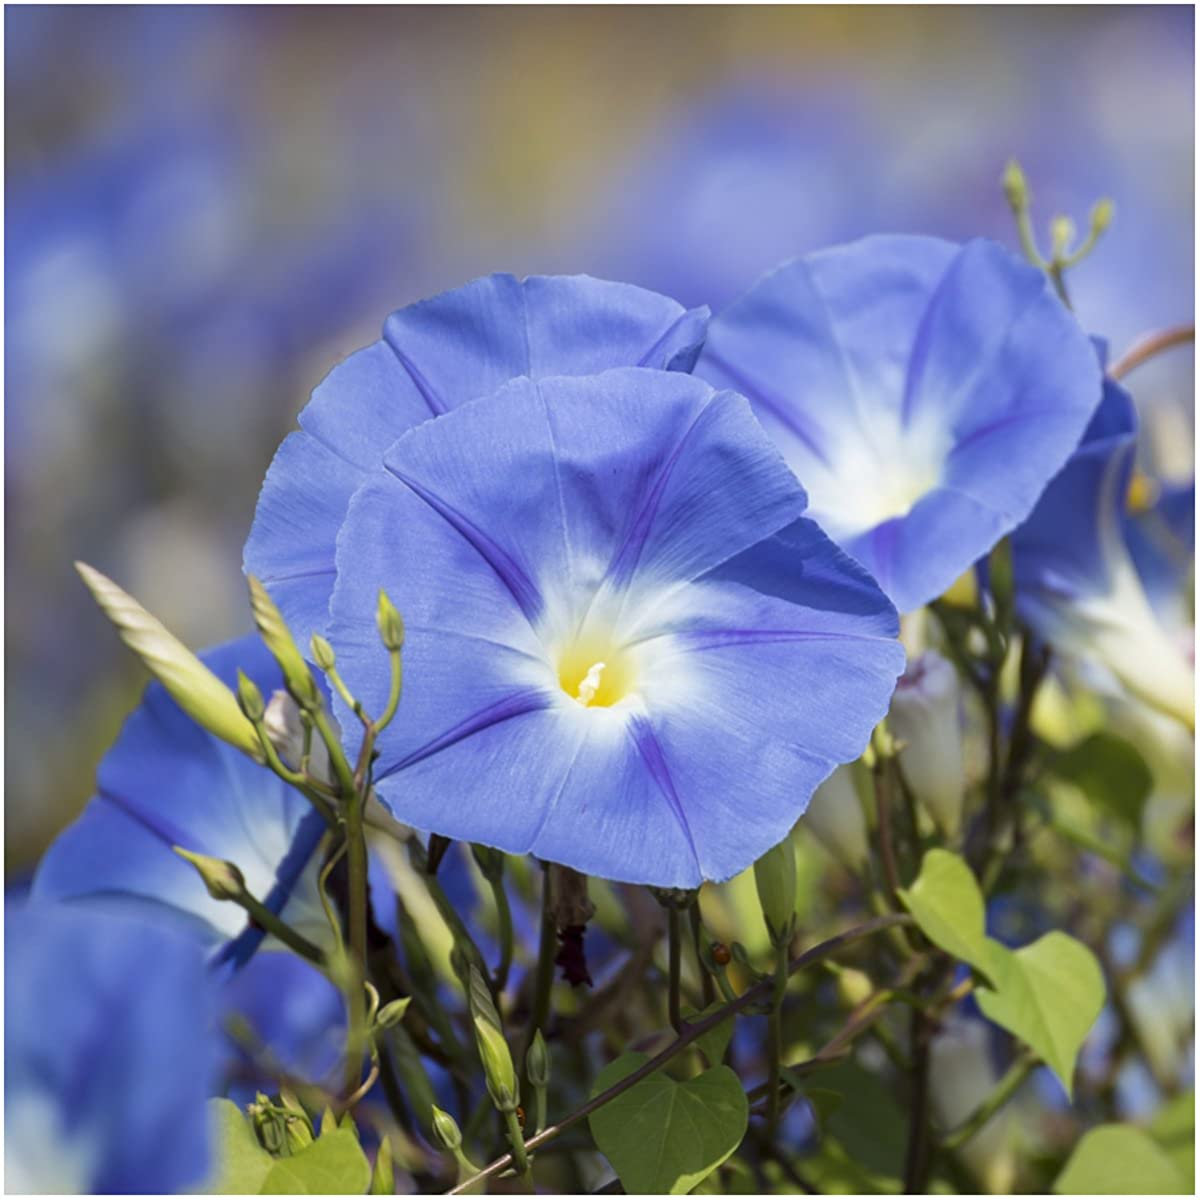 Package of 1,000 Seeds, Heavenly Blue Morning Glory (Ipomoea tricolor) Untreated, Non-GMO Seeds by Seed Needs